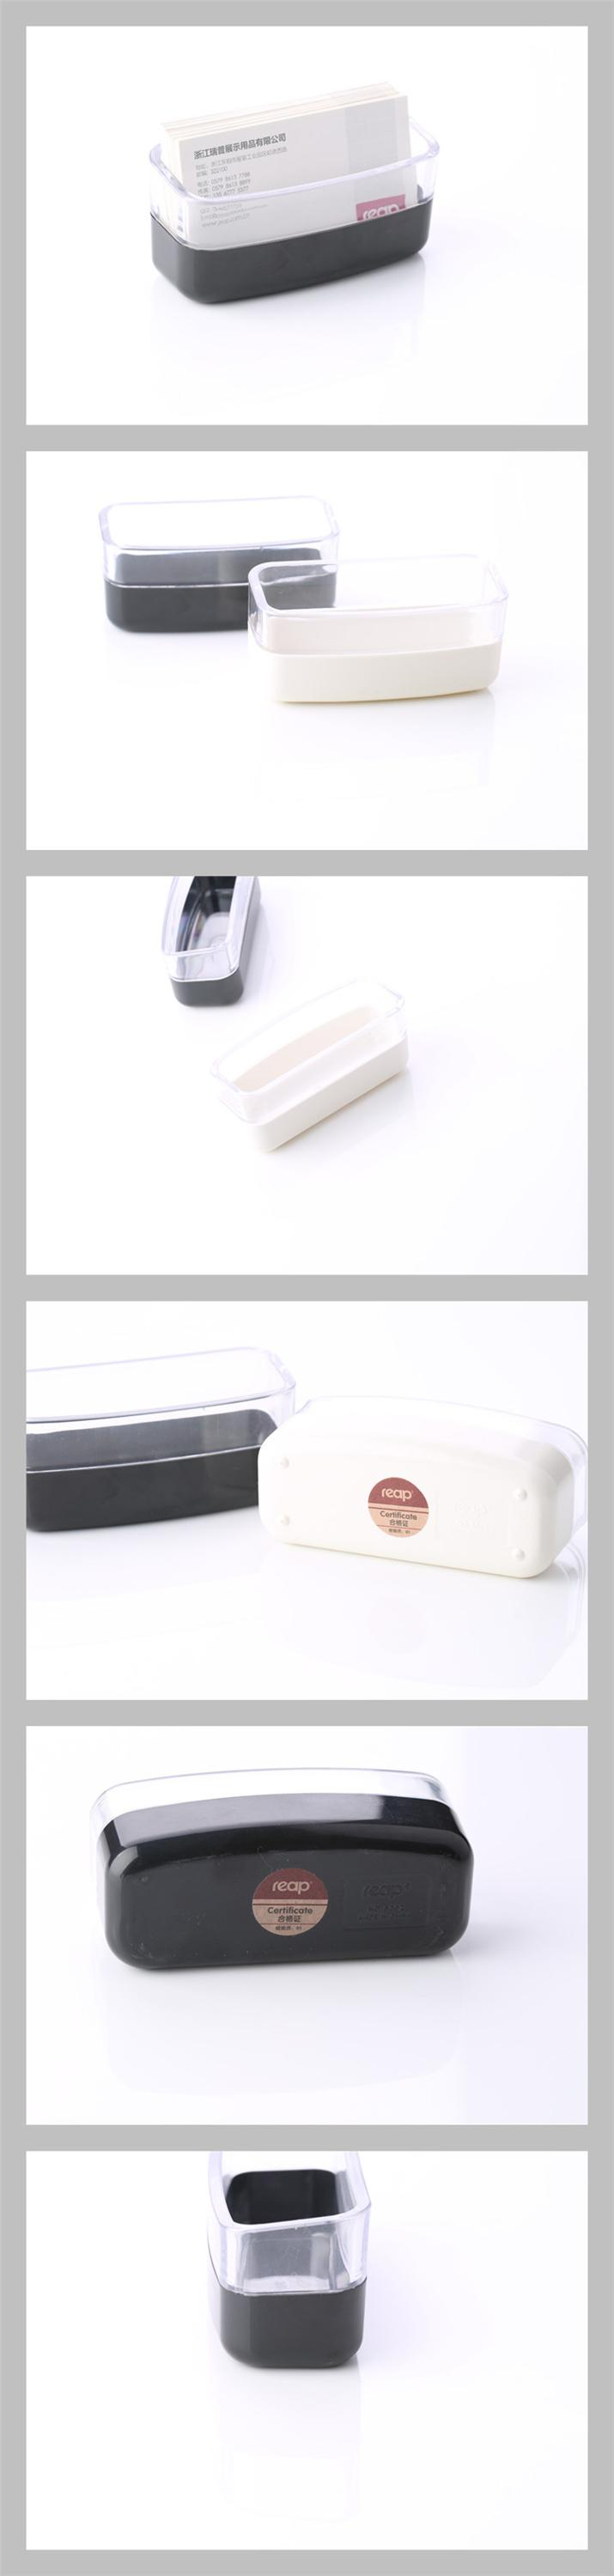 two colors plastic material business card holder for office and